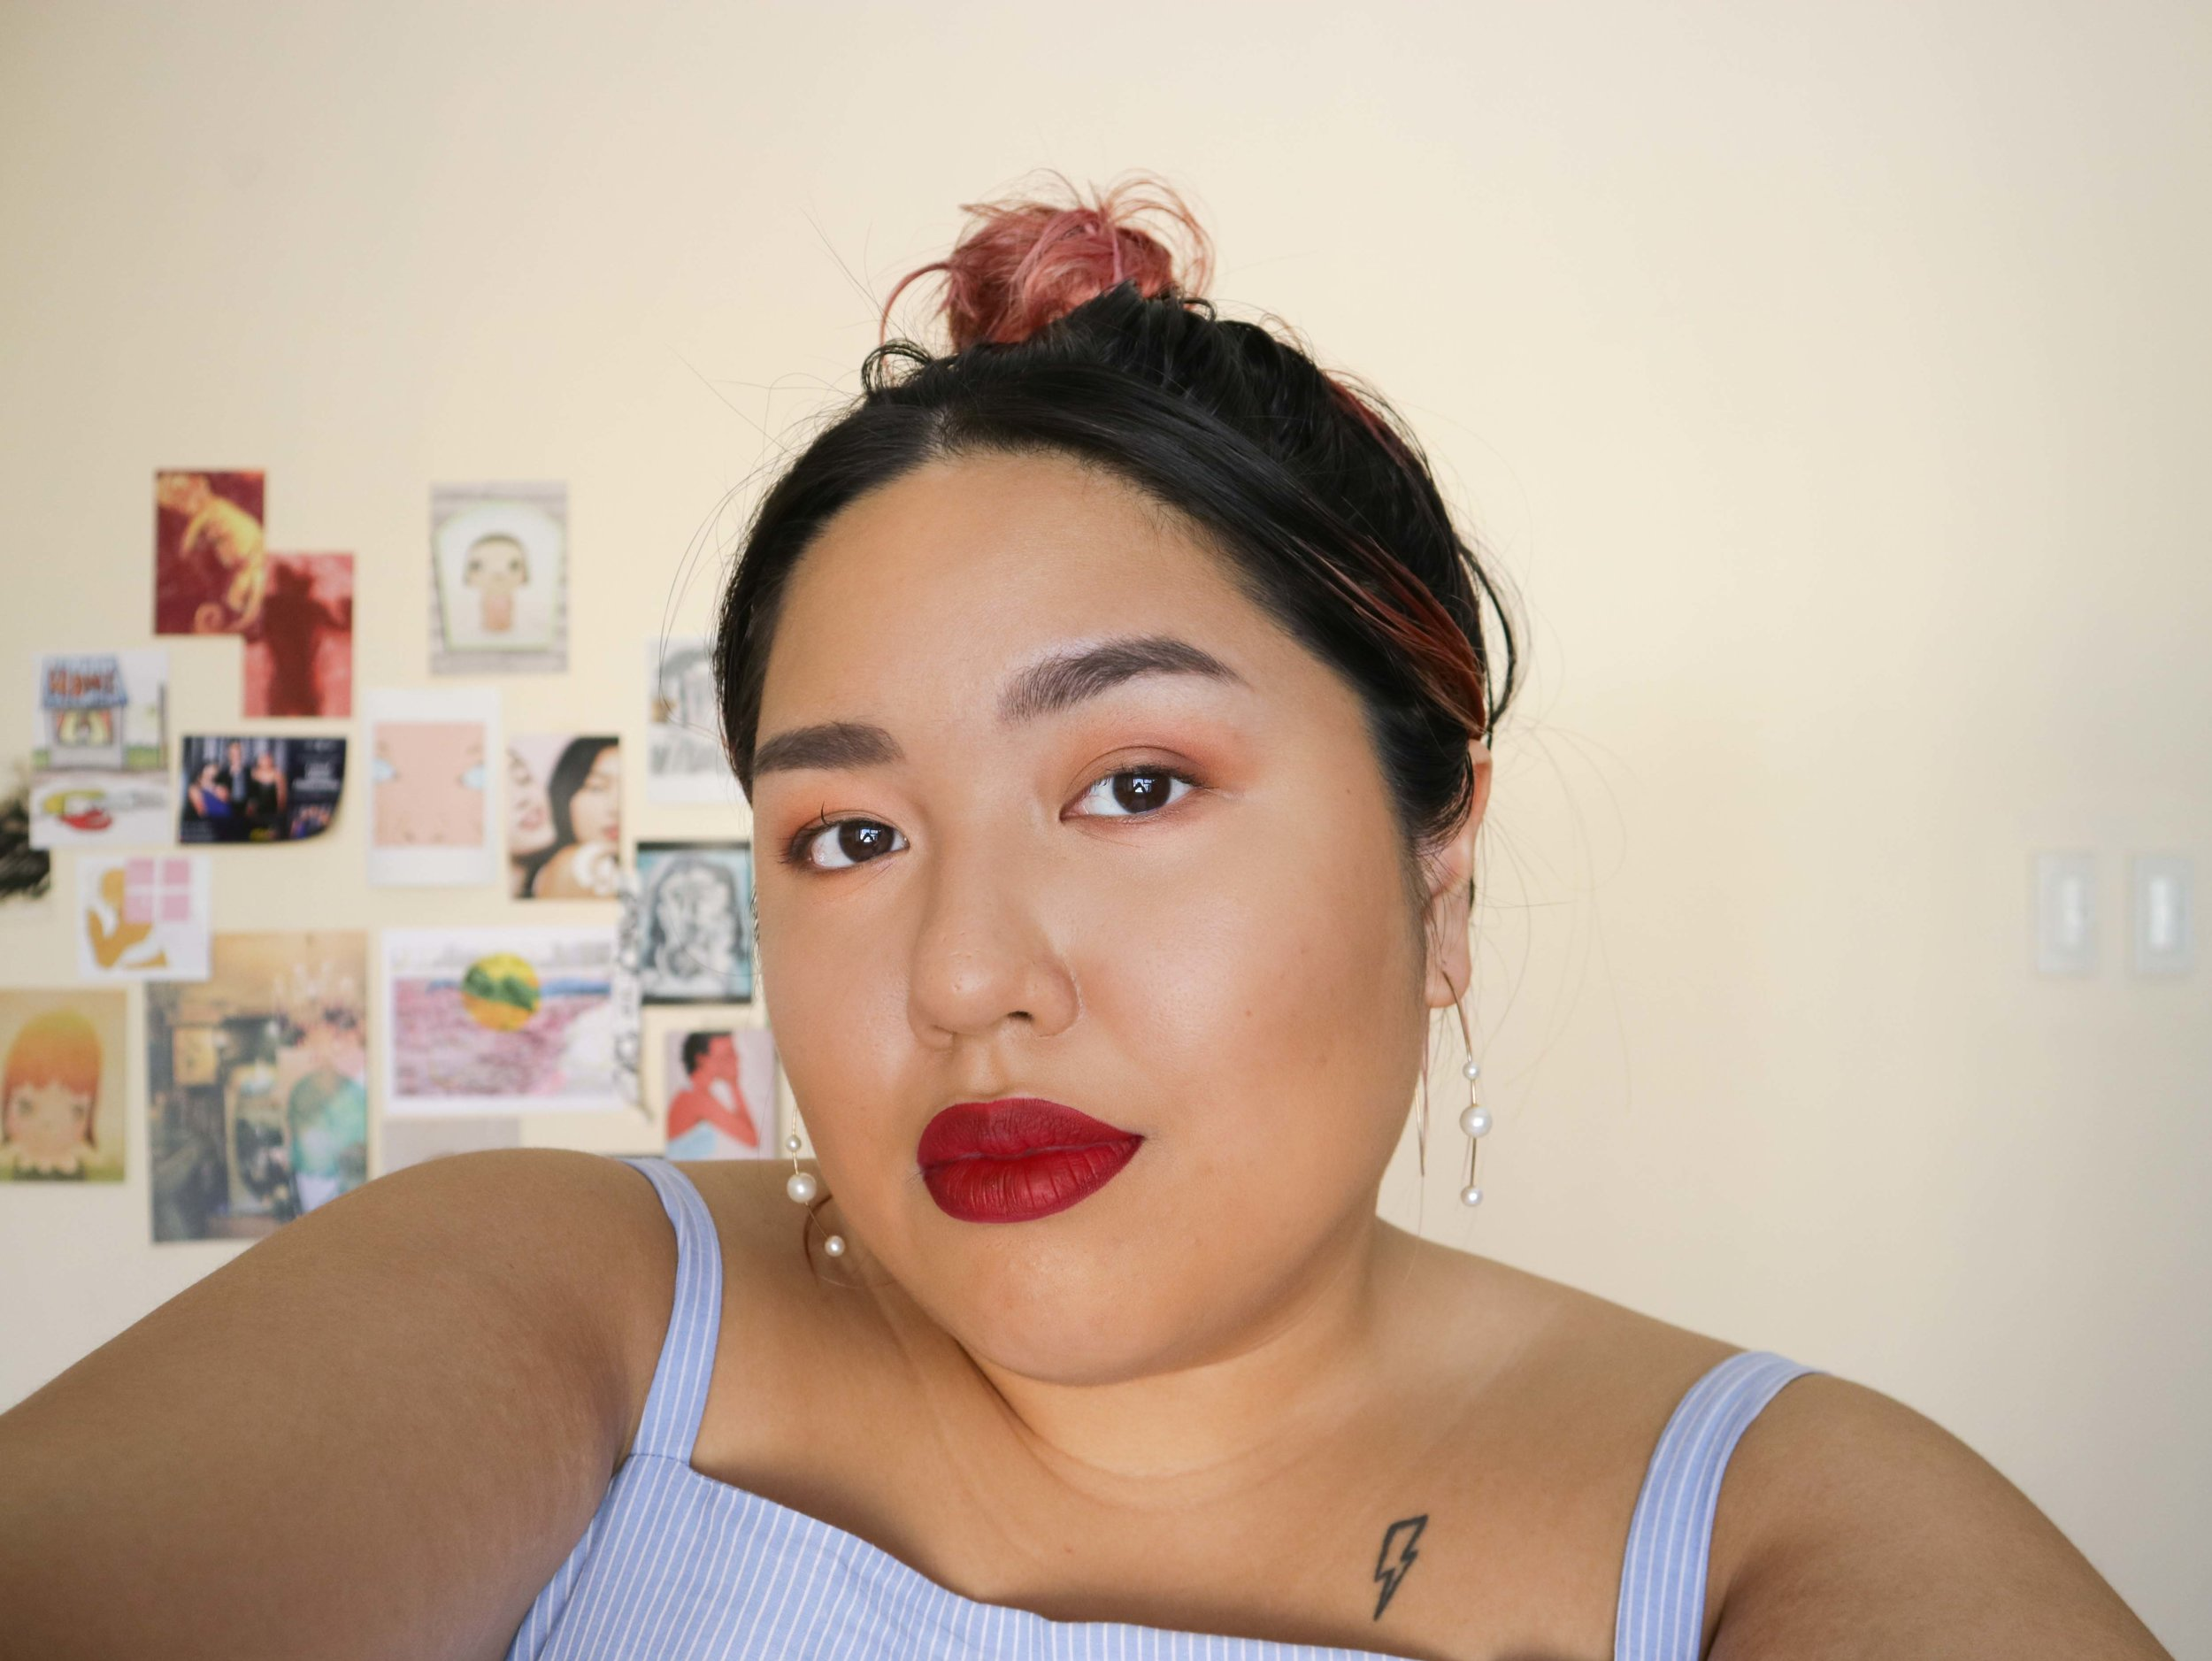 Beau  is your classic vamp, a maroon reminiscent of MAC  Diva . It makes a great impact, so I decided to up the ante by really contouring the cheeks and eyes and paired with a topknot for more Intsagrammy goodness.